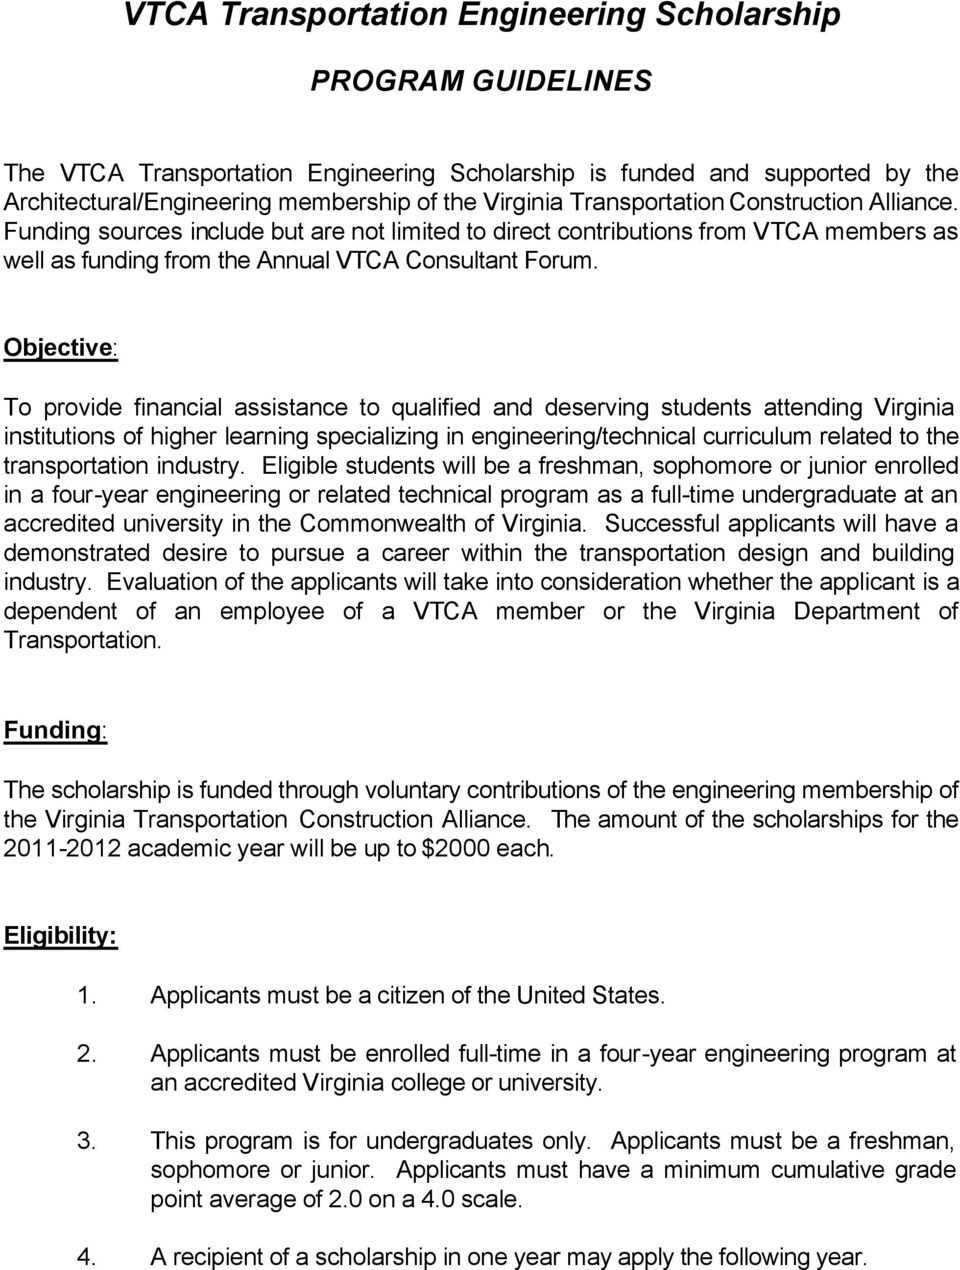 Objective: To provide financial assistance to qualified and deserving students attending Virginia institutions of higher learning specializing in engineering/technical curriculum related to the